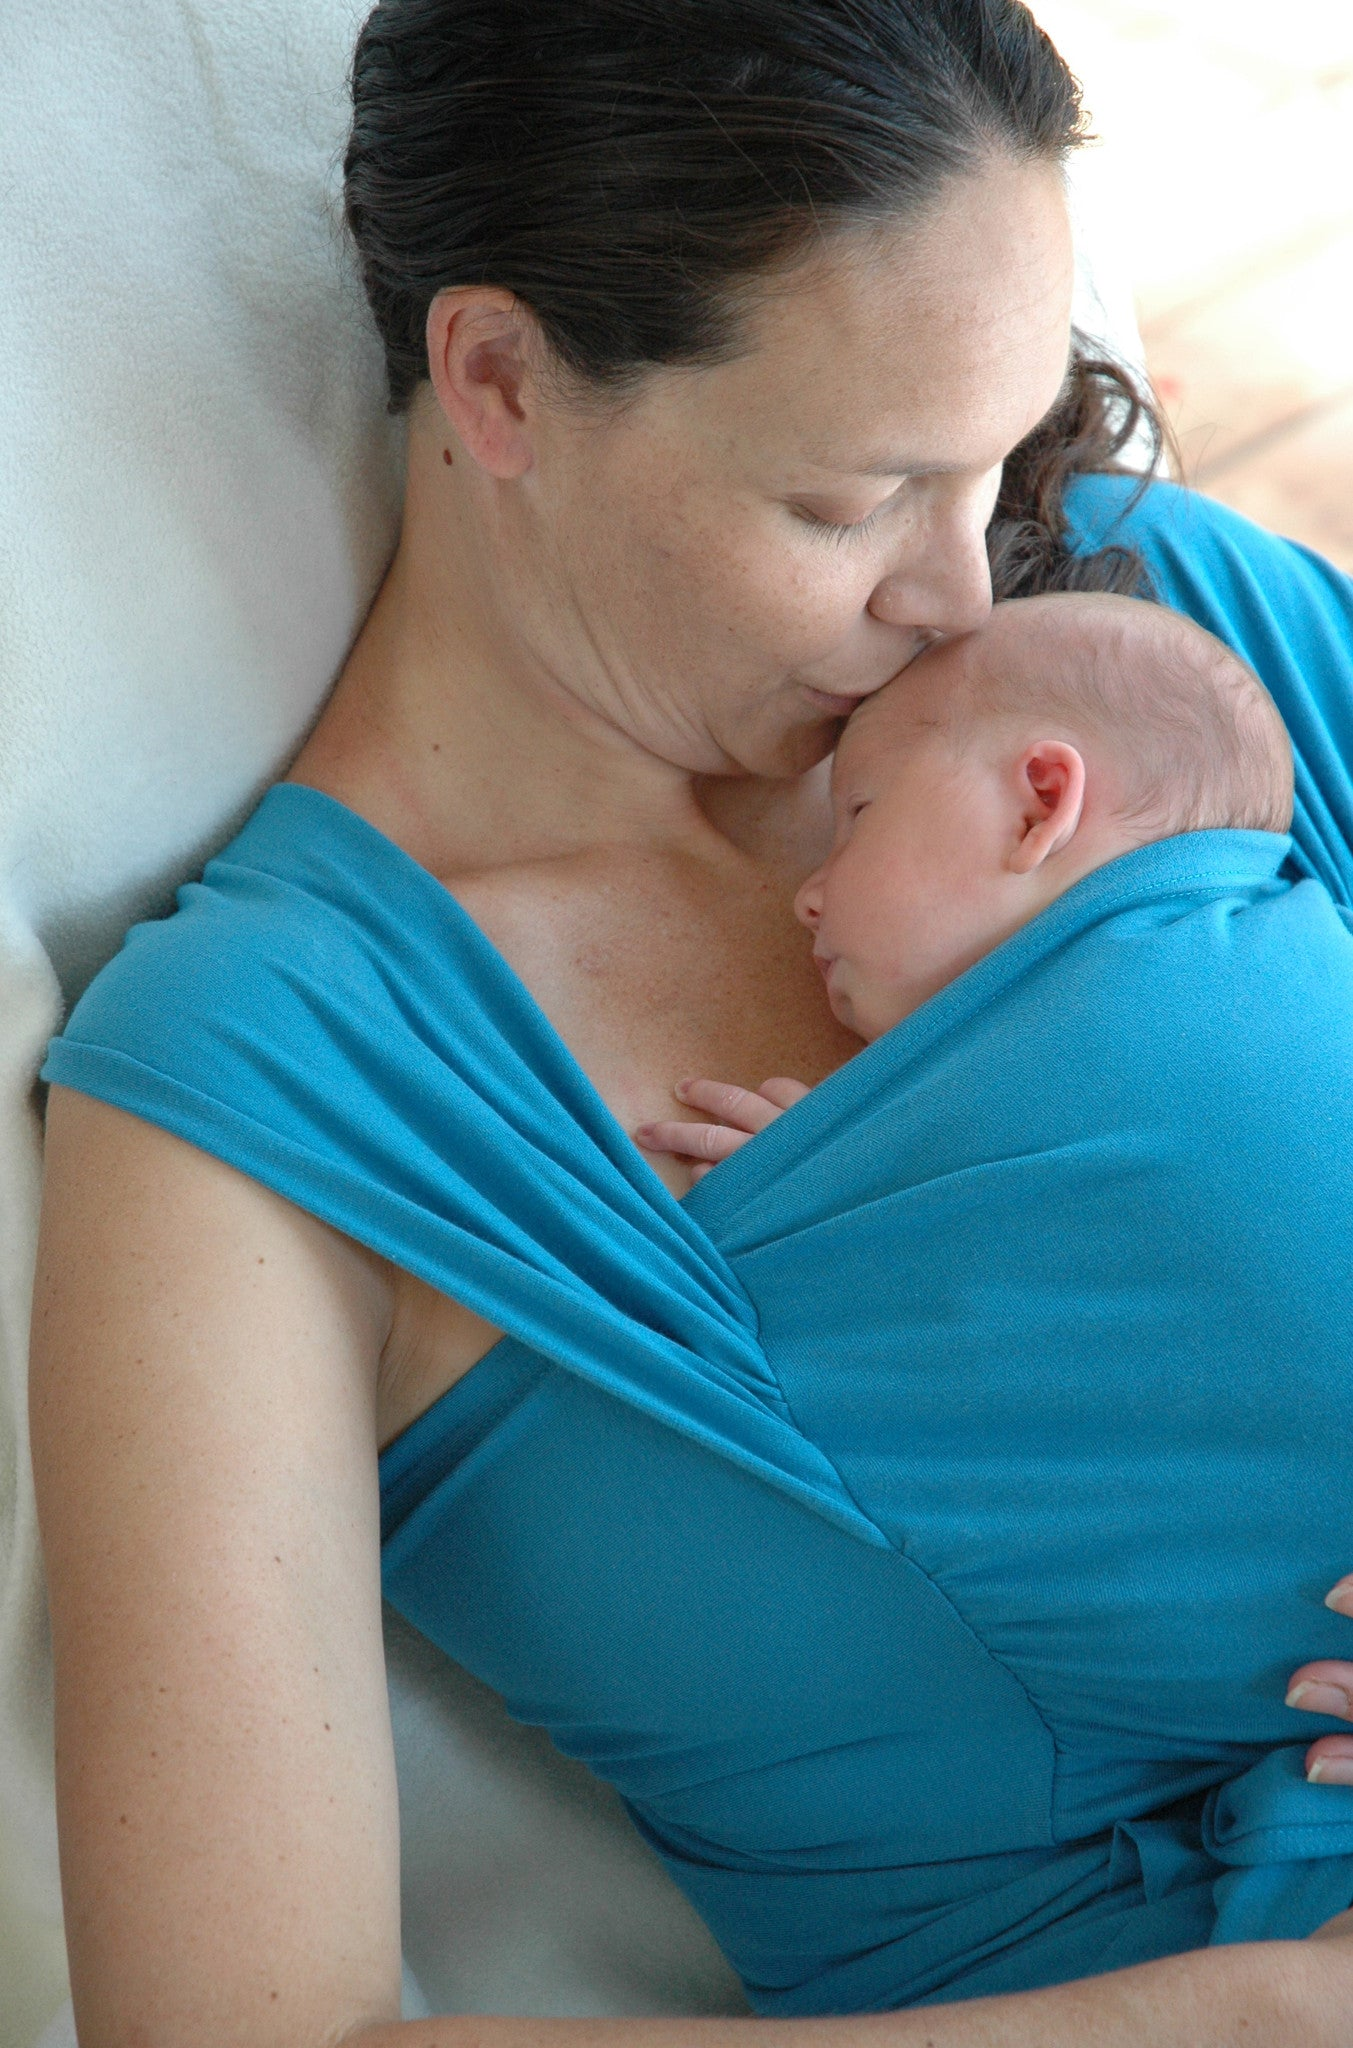 Babies need Skin to Skin Time.  New research shows your instinct to hold your baby close is right.